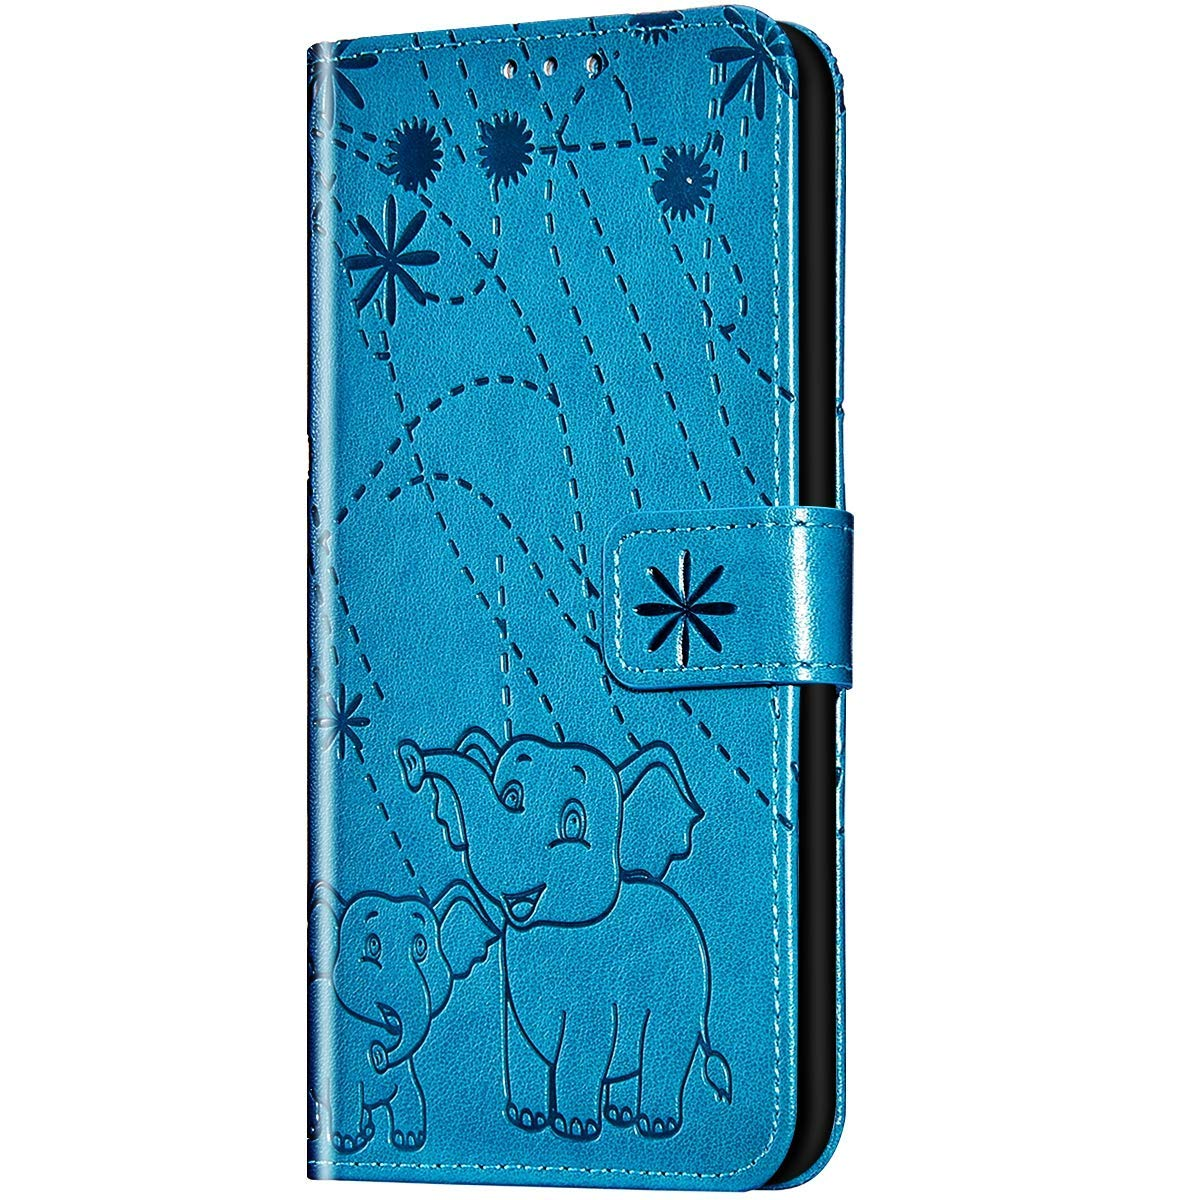 Case for Galaxy A6 Plus 2018 Flip Case Premium Soft PU Leather Embossed with Folding Stand, Card Slots, Wristlet and Magnetic Closure Protective Cover for Galaxy A6 Plus 2018,Blue by ikasus